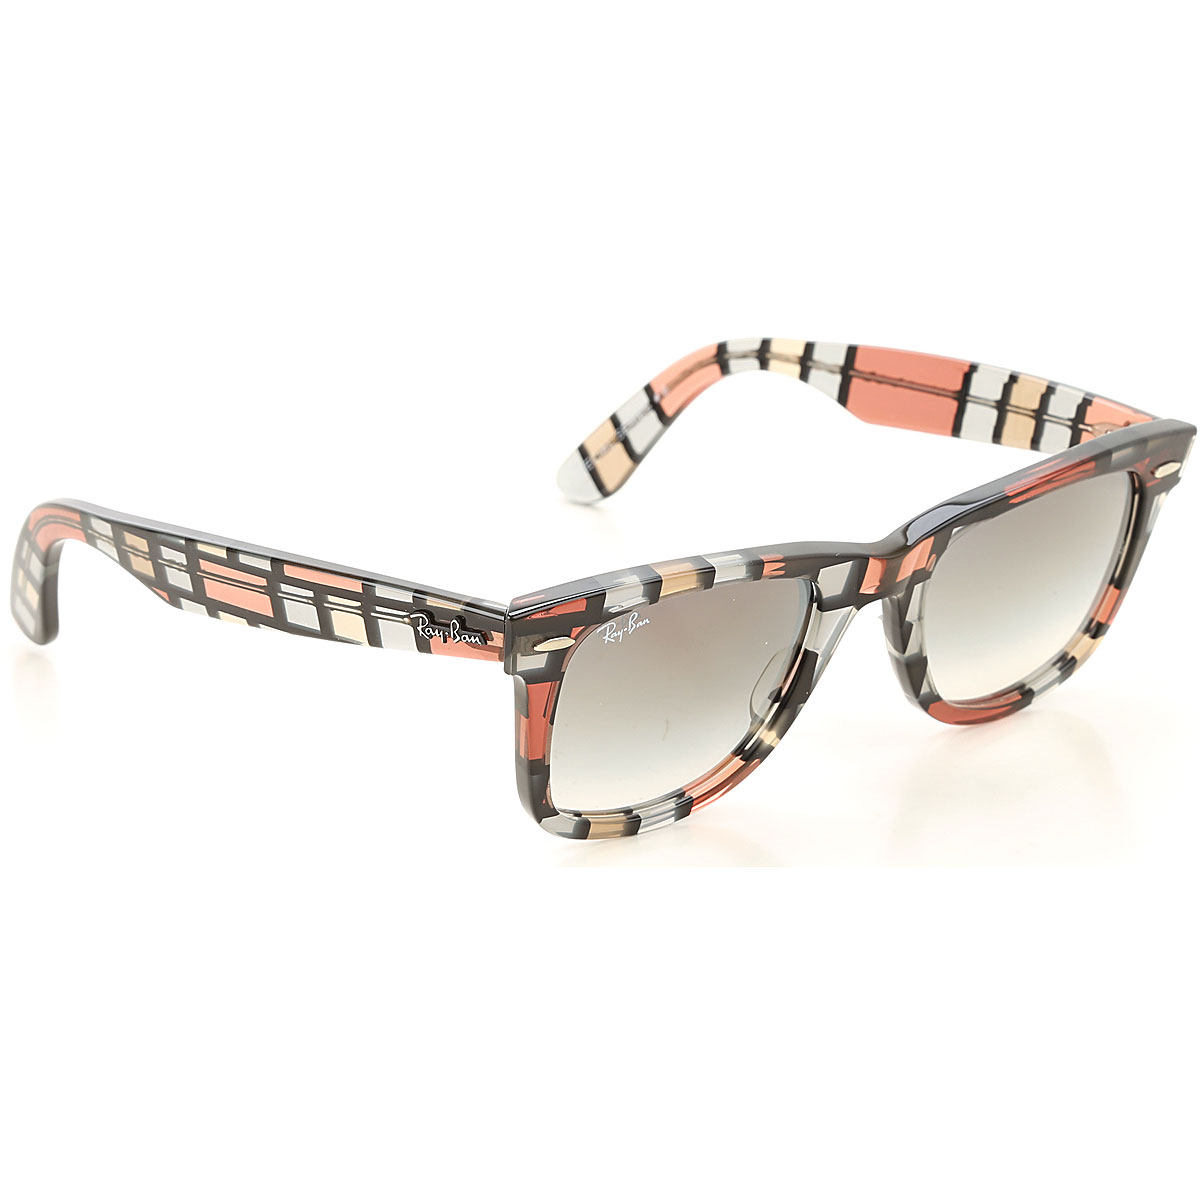 Ray Ban Sunglasses On Sale, Transparent Red, 2019